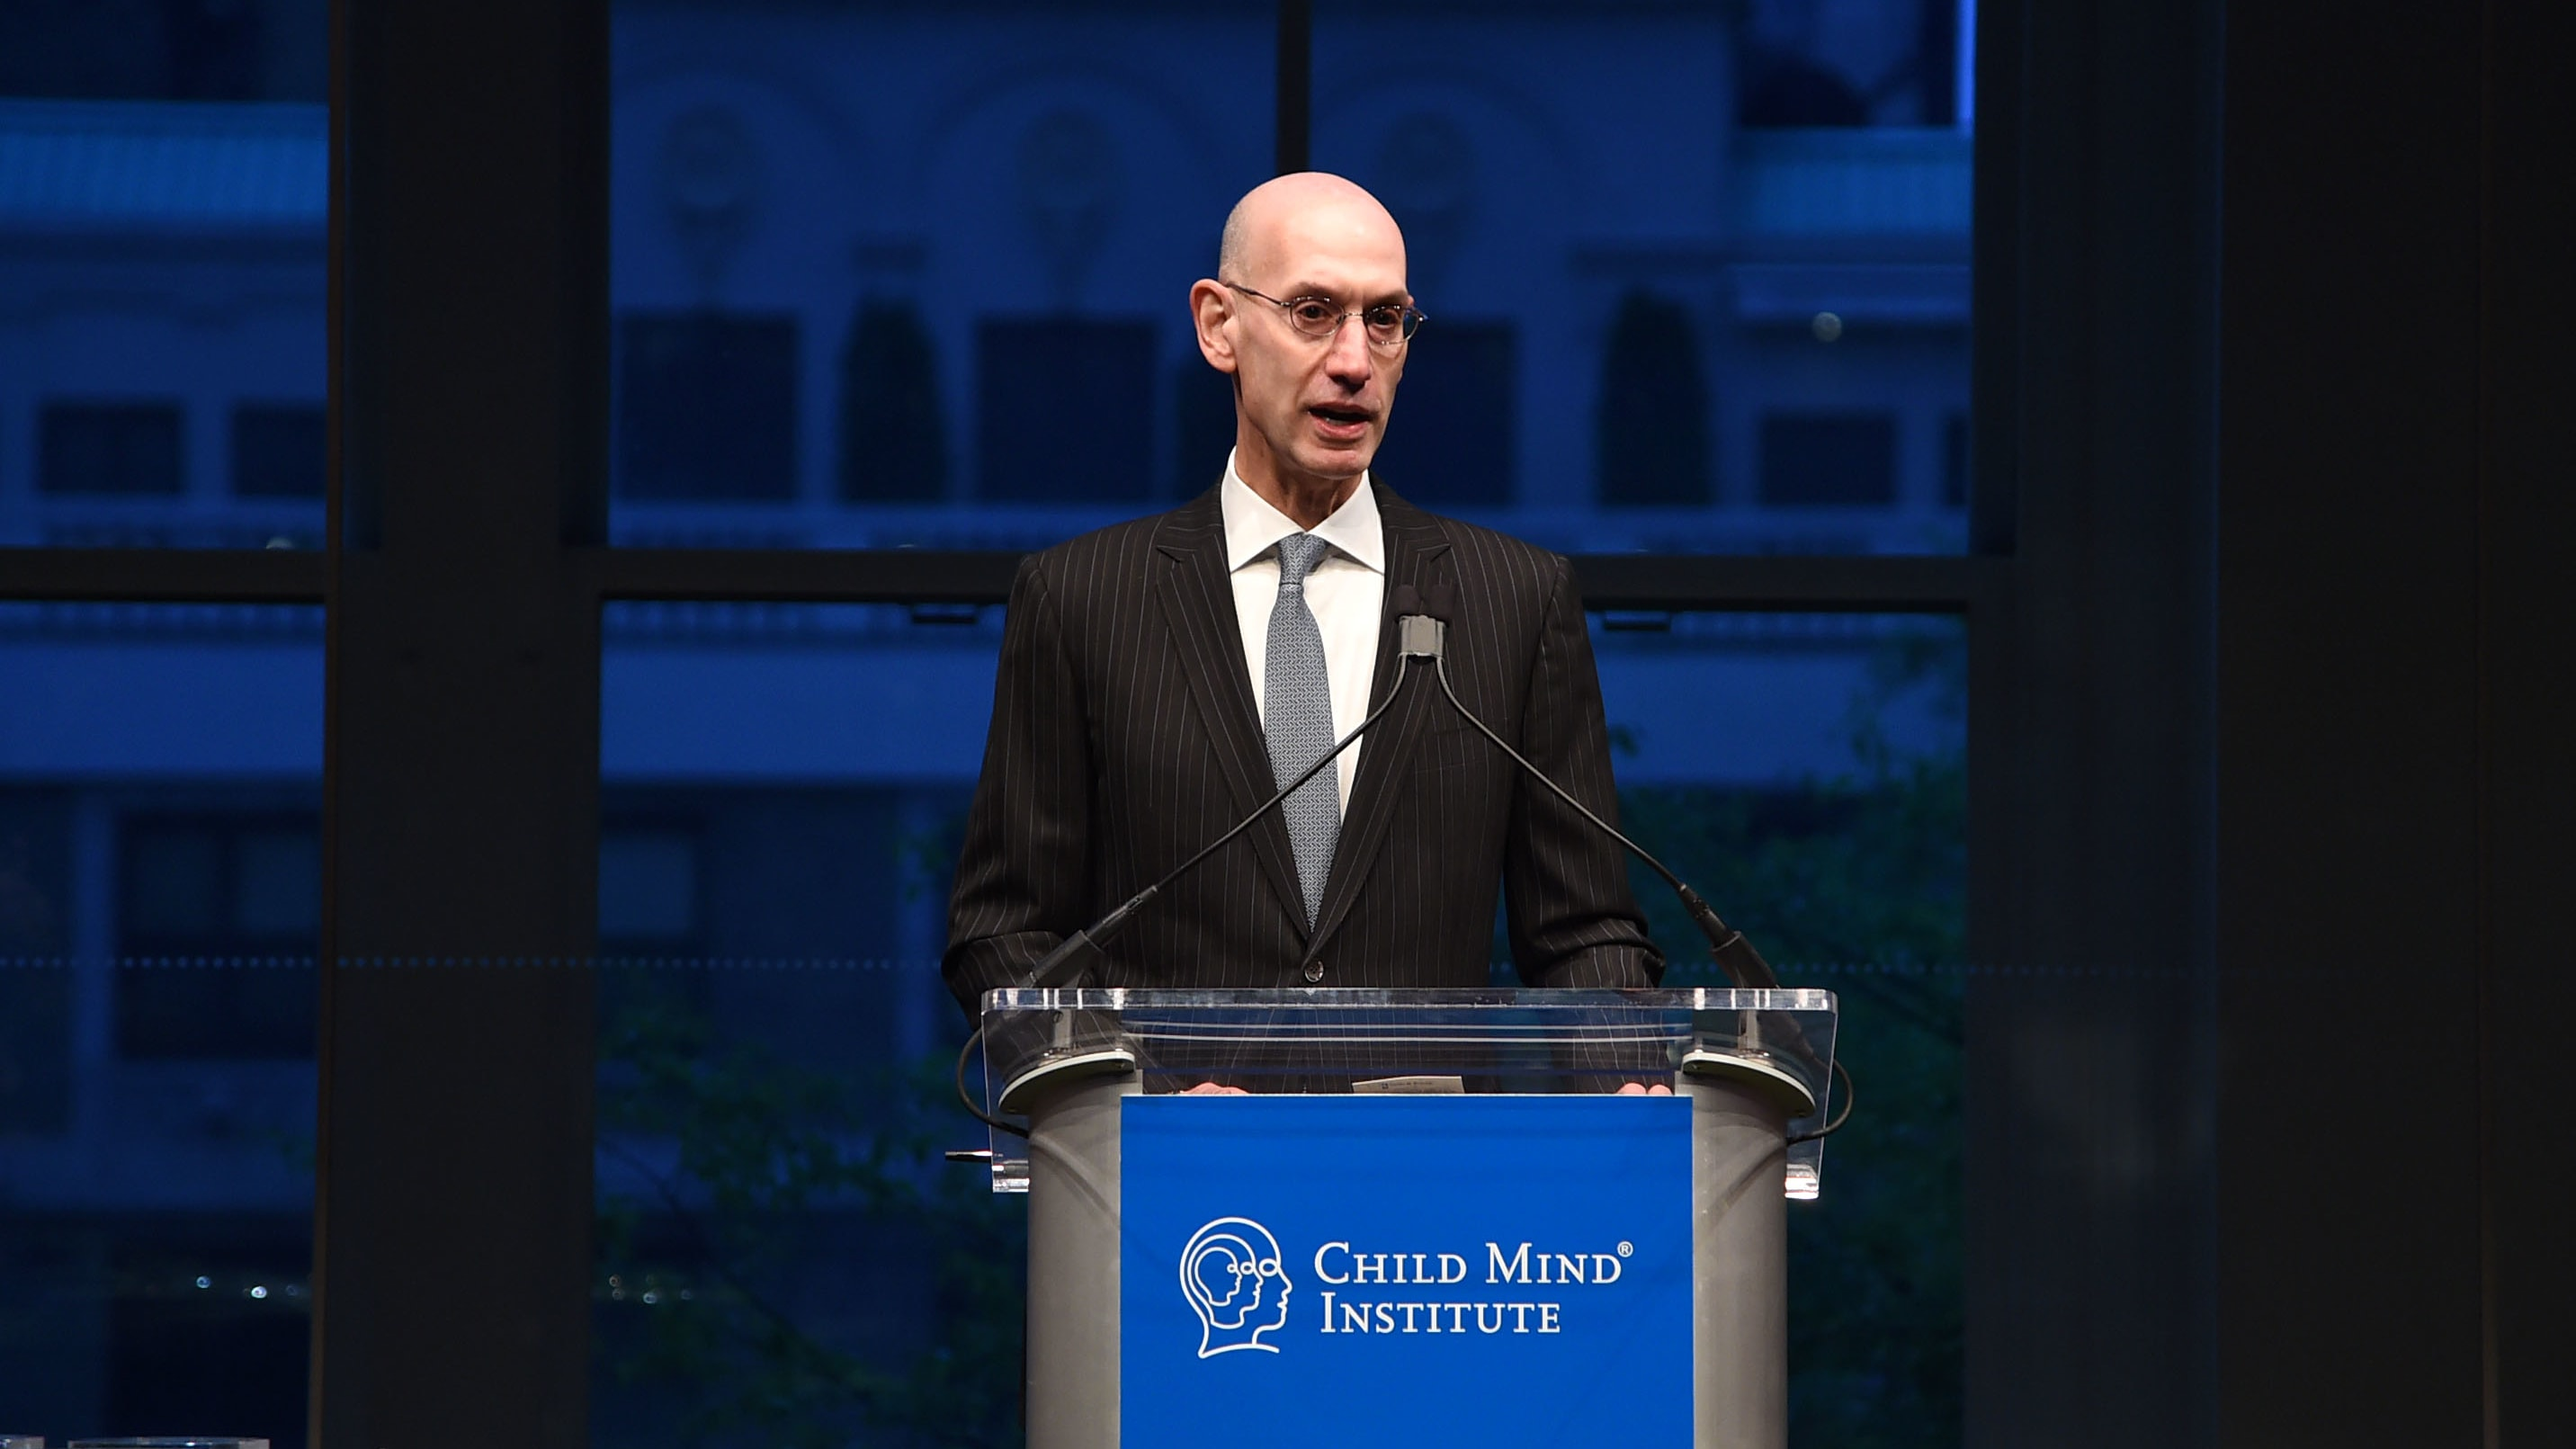 NEW YORK, NEW YORK - MAY 01: Presenter Adam Silver speaks on stage during the Child Mind Institute's 2019 Change Maker Awards at Carnegie Hall on May 01, 2019 in New York City. (Photo by Jamie McCarthy/Getty Images for Child Mind Institute)